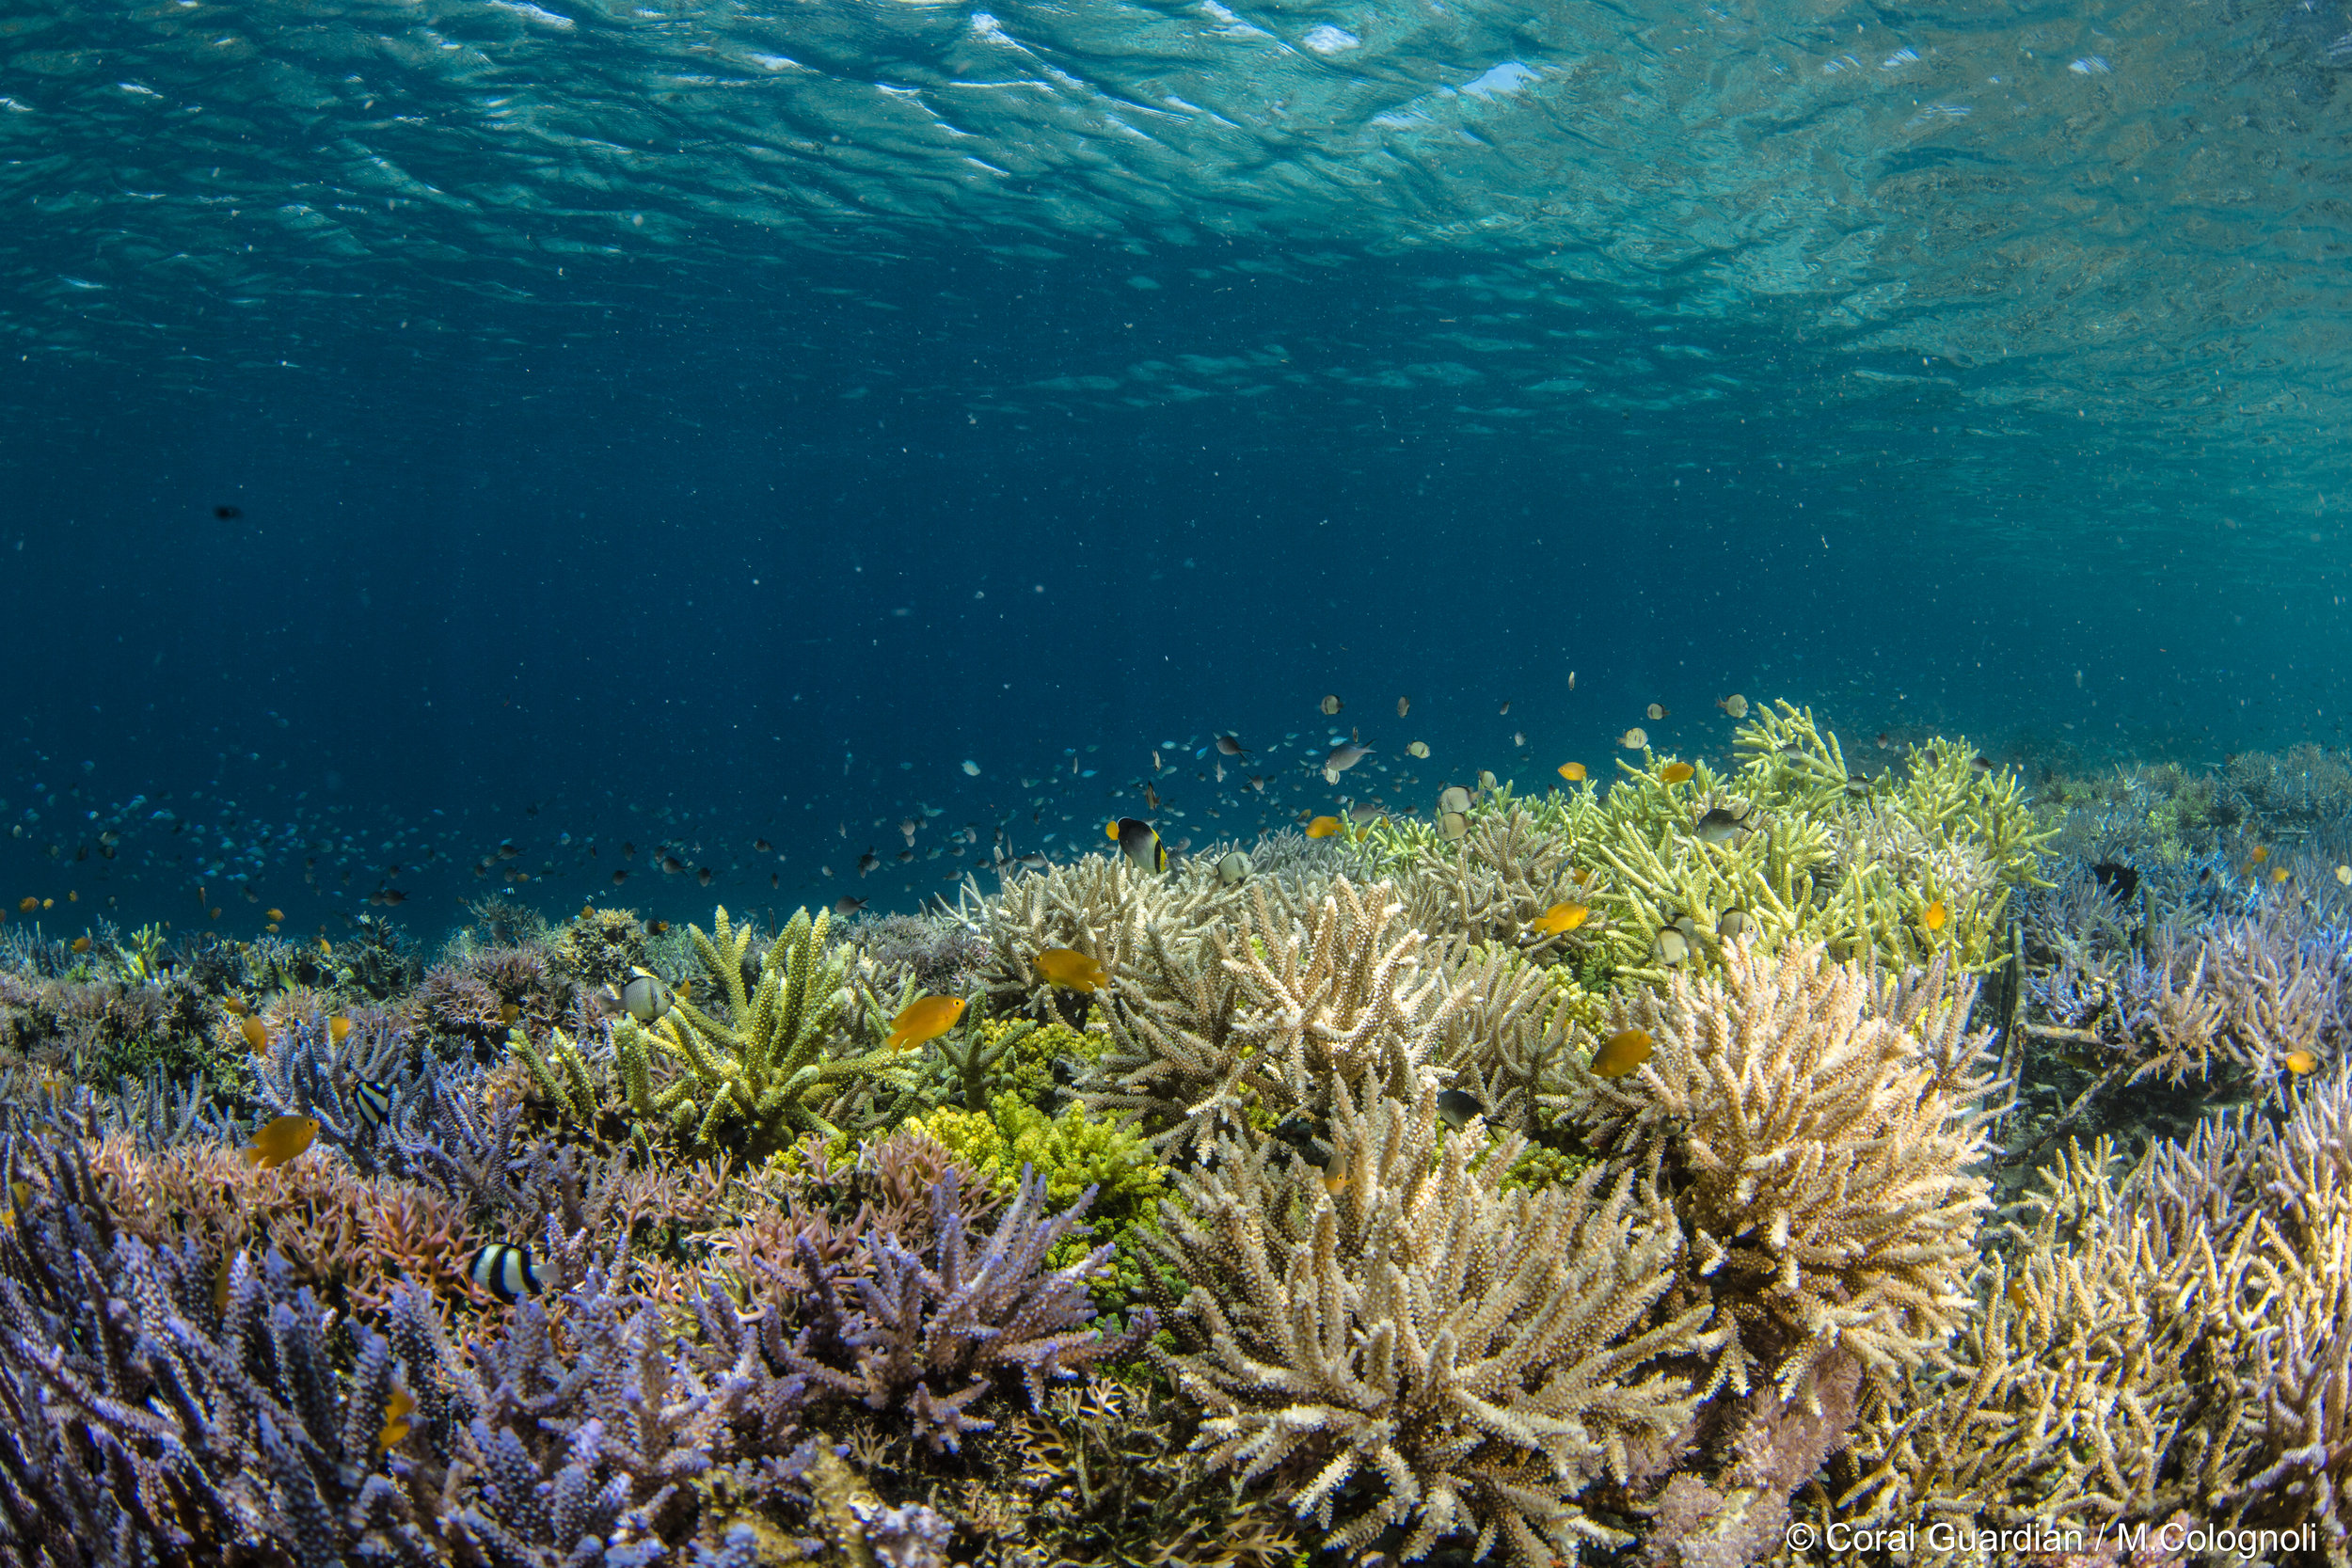 12 - The community's reefs are now thriving CrEDIT: MArtin COLOGNOLI